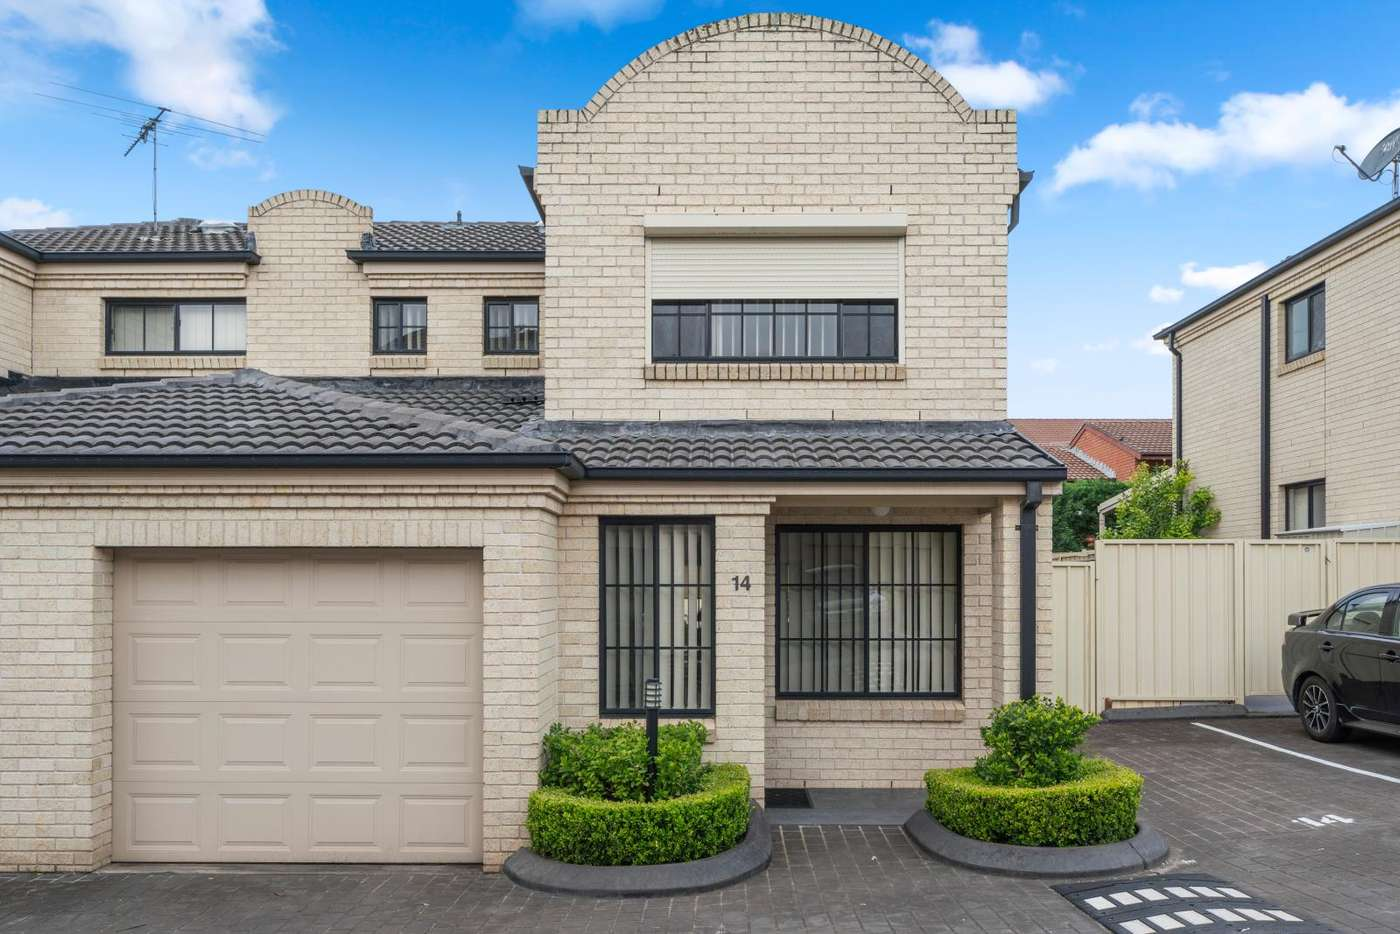 Main view of Homely townhouse listing, 14/46-52 Wattle Road, Casula NSW 2170